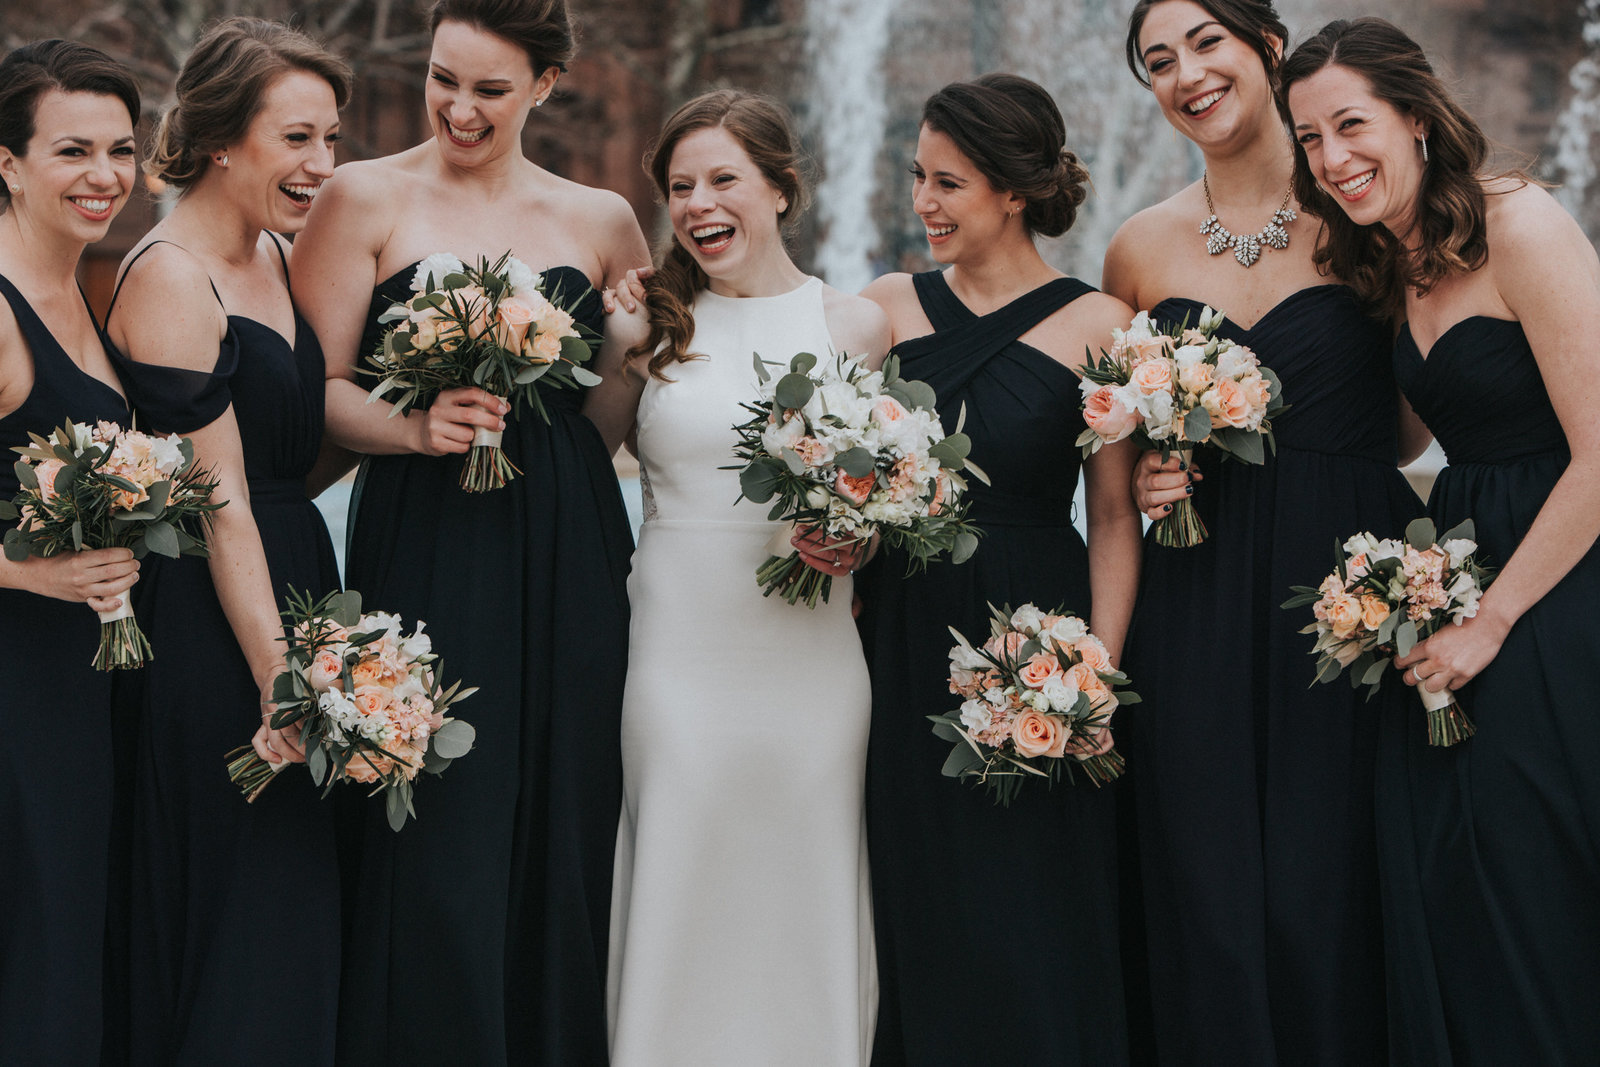 fun bride and bridesmaids portrait in philadelphia